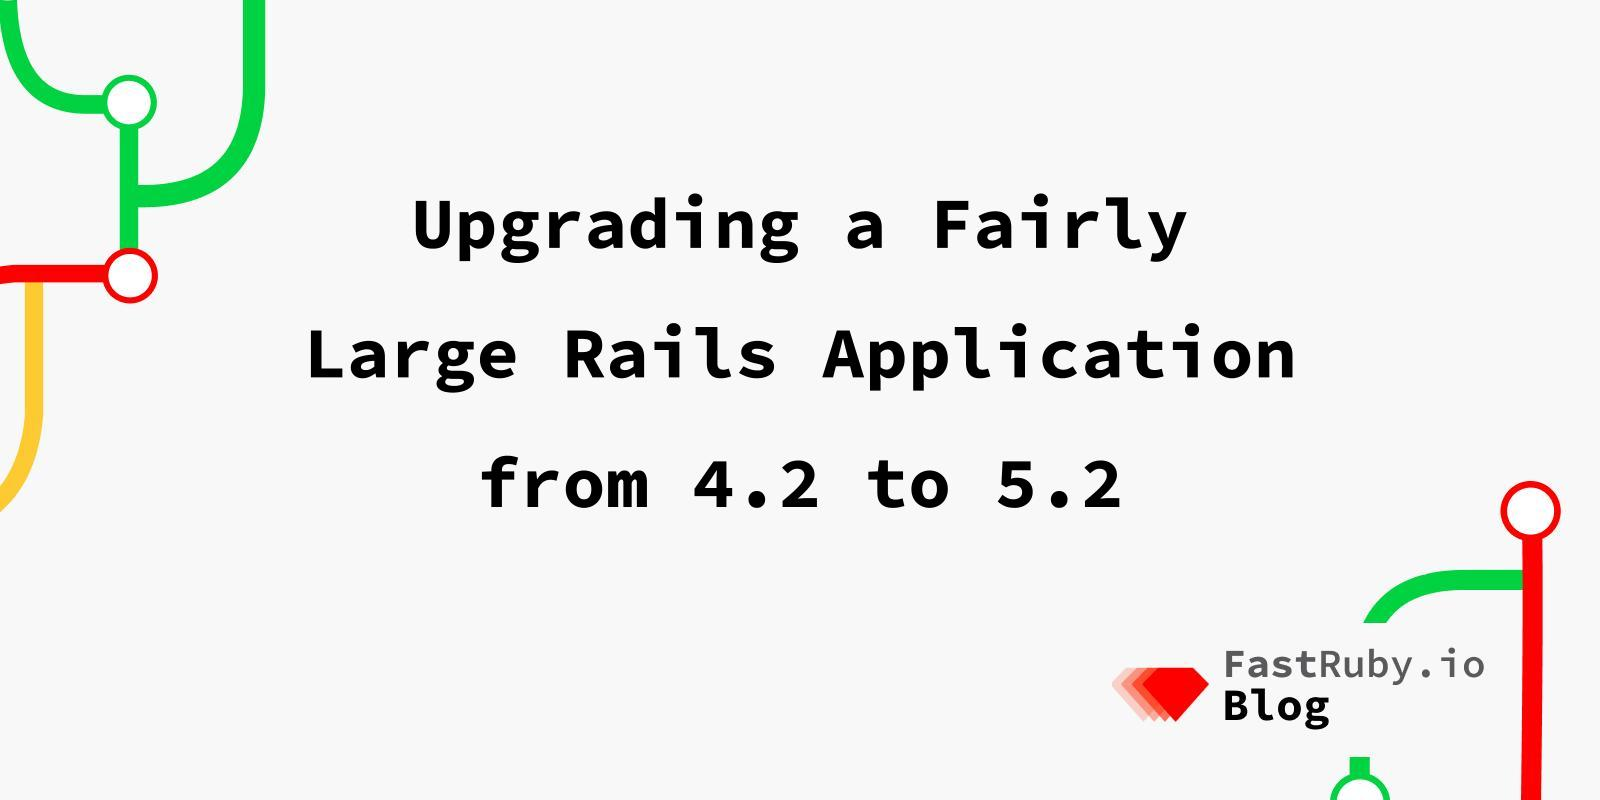 Upgrading a Fairly Large Rails Application from 4.2 to 5.2